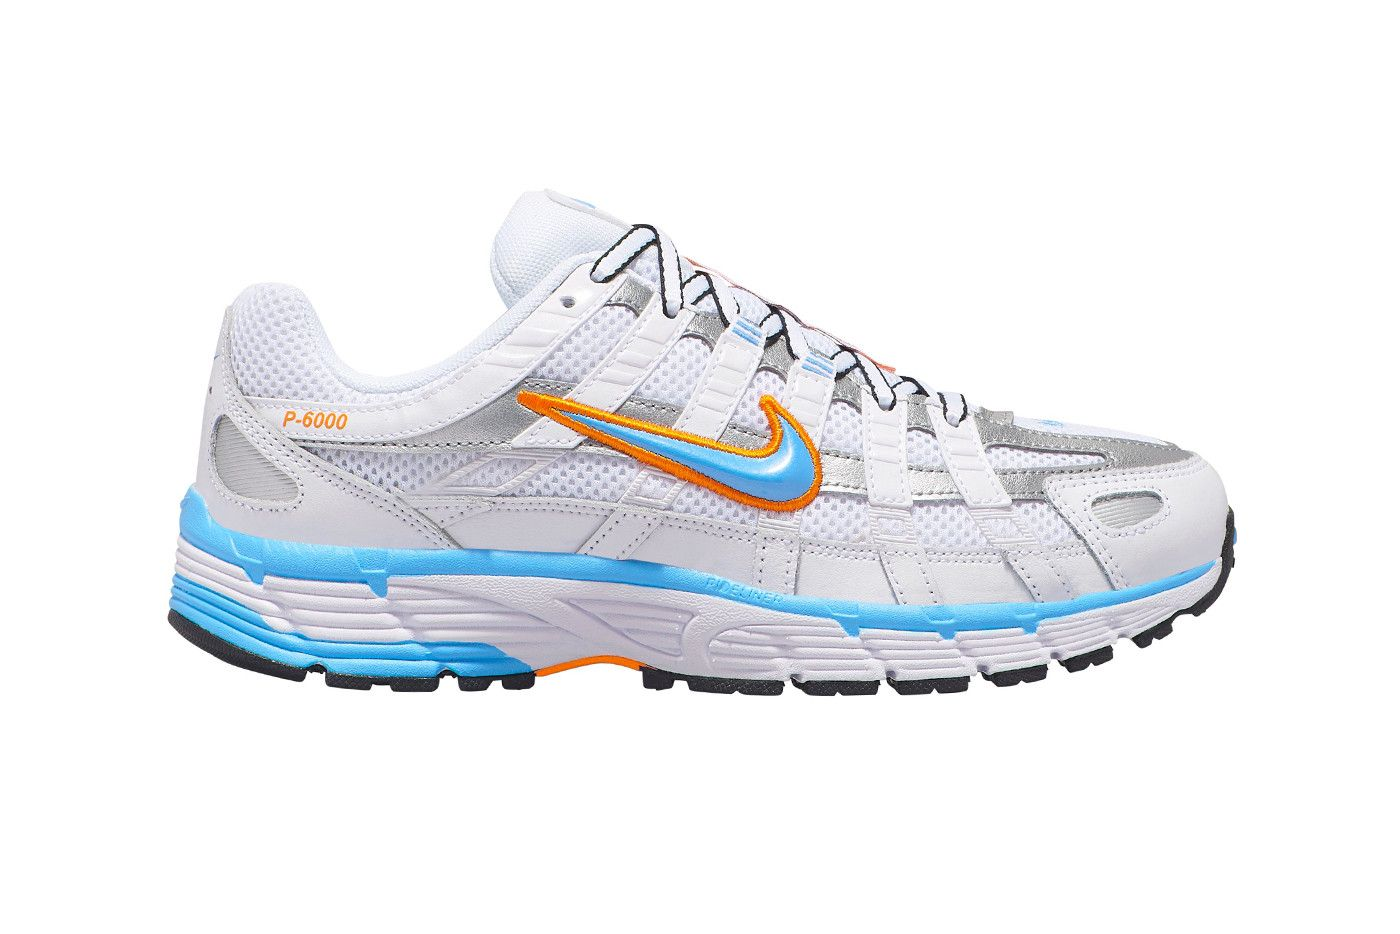 Exclusivo he equivocado Ventilar  Take a First Look at the Nike P-3000 CNCPT   Nike, Air max sneakers, Nike  air max